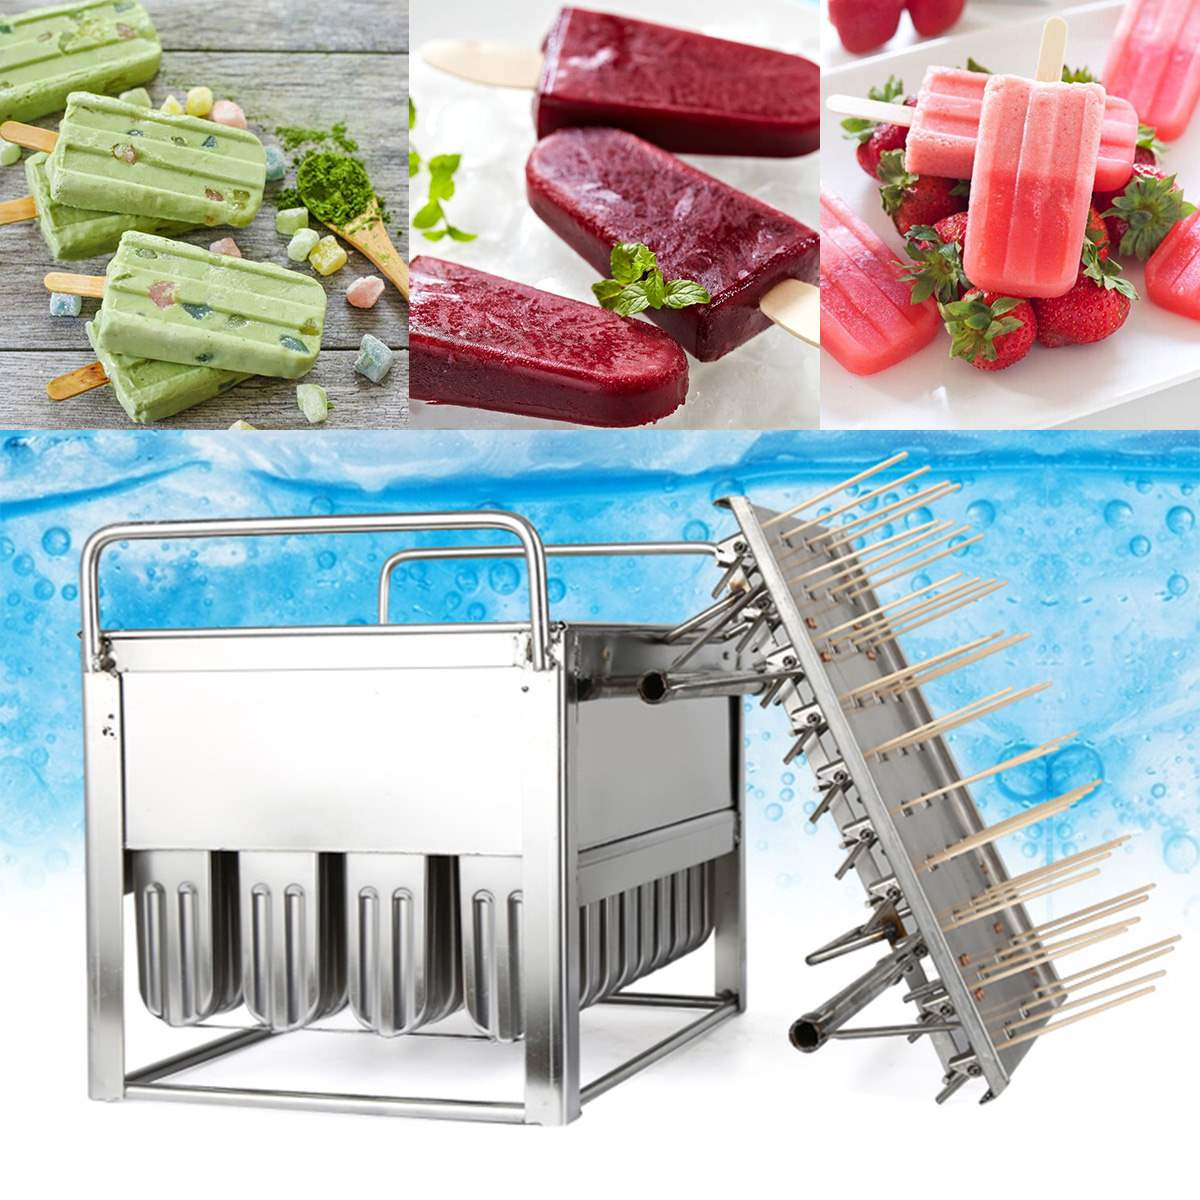 40Pcs Stainless Steel Ice Pop Mold Ice Lolly Popsicle Mould Stick Holder DIY Home Kitchen Shop Ice Cream Maker Accessories